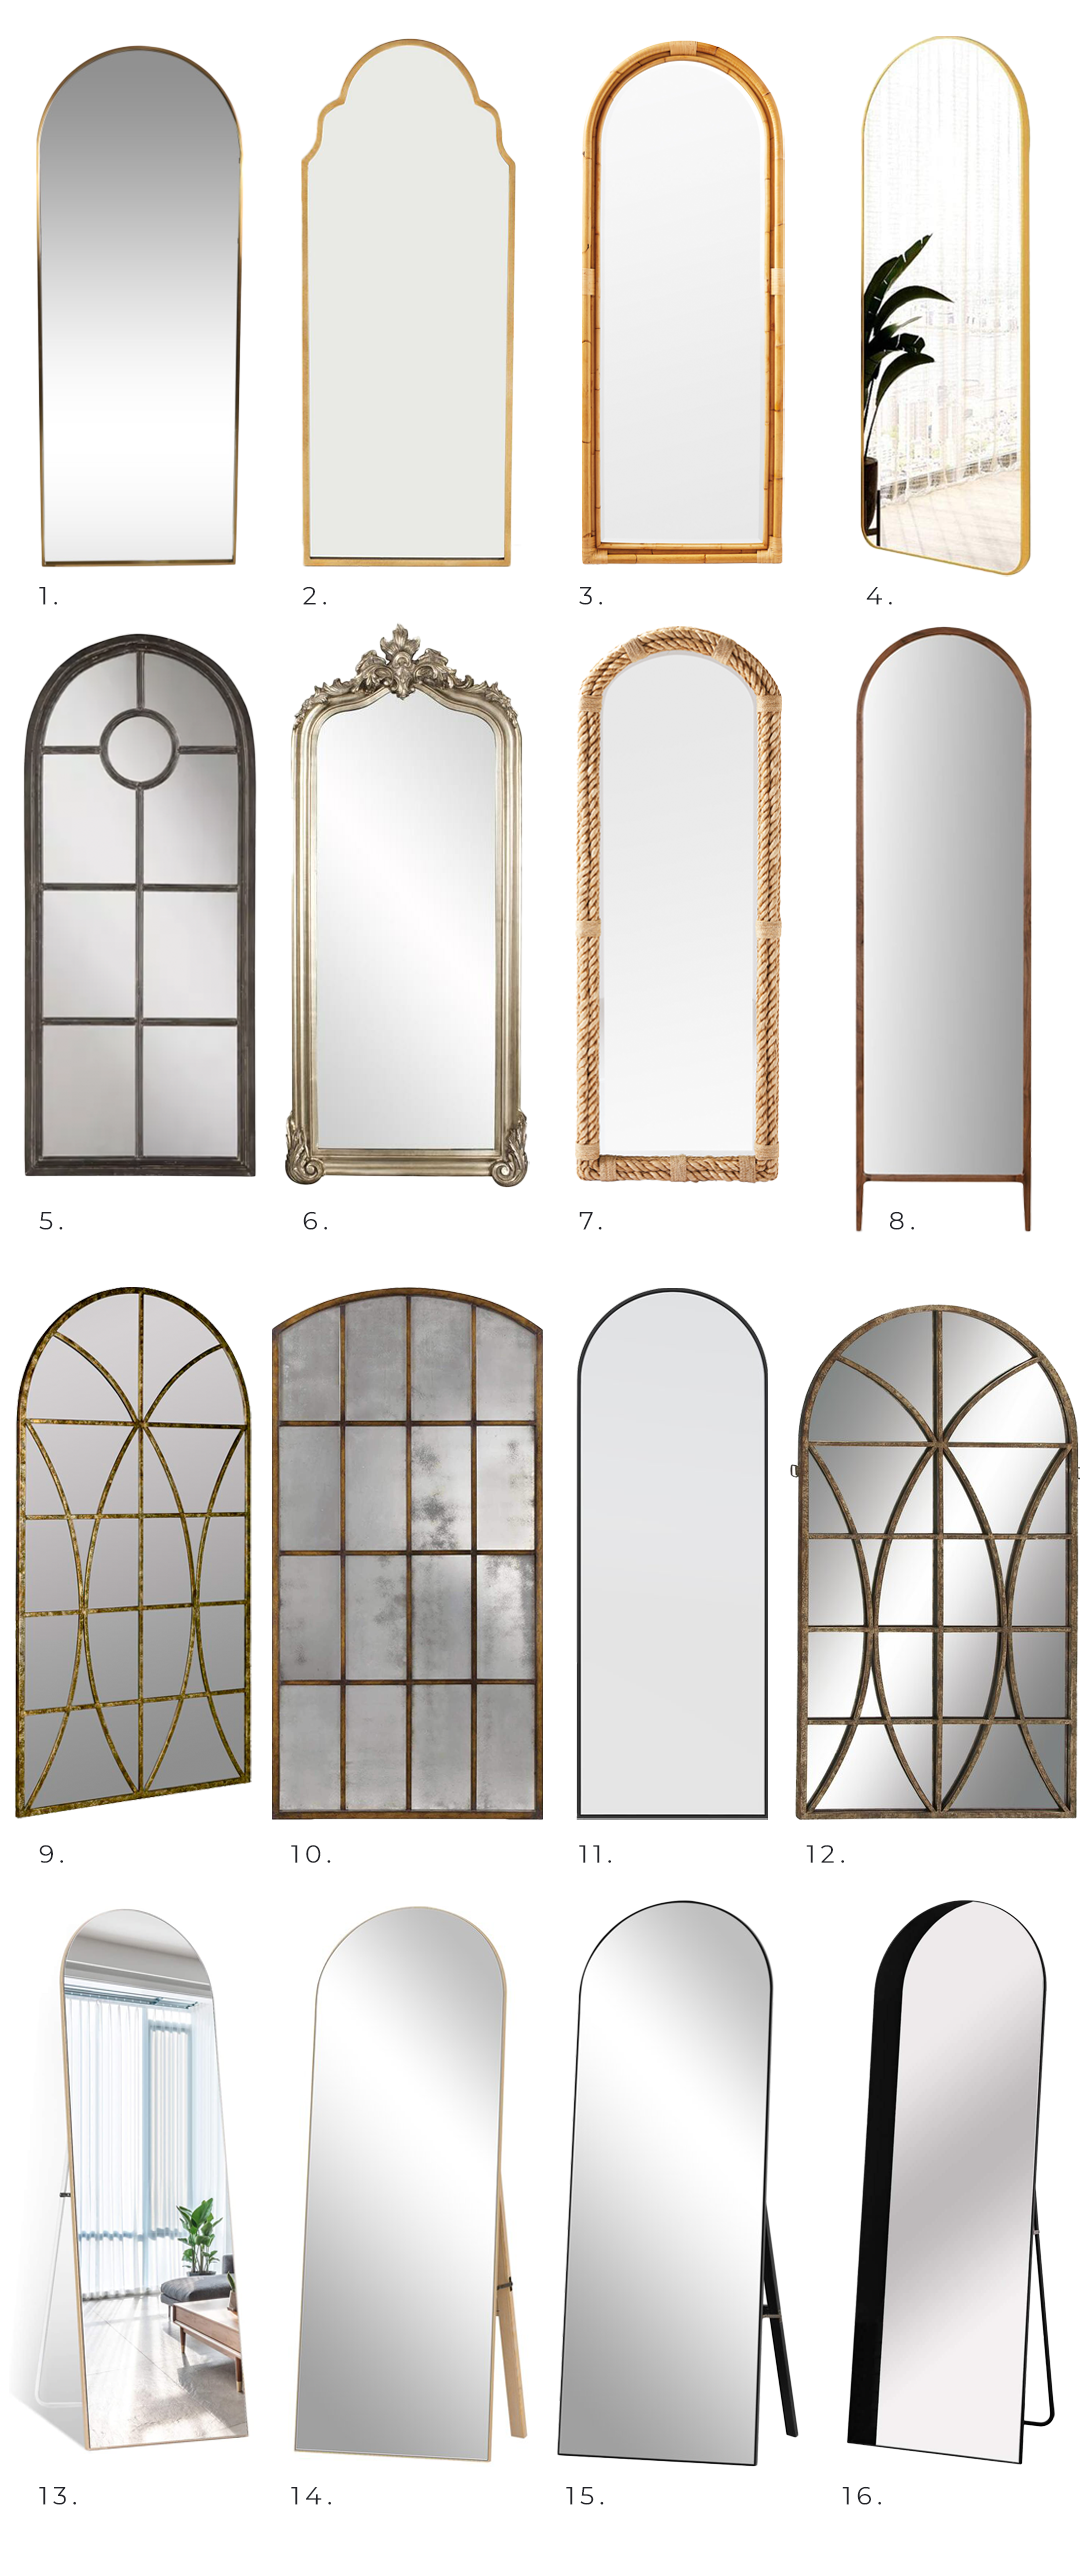 20+ Stylish Full Length Arched Mirror Options You'll Love - Pursuit Decor